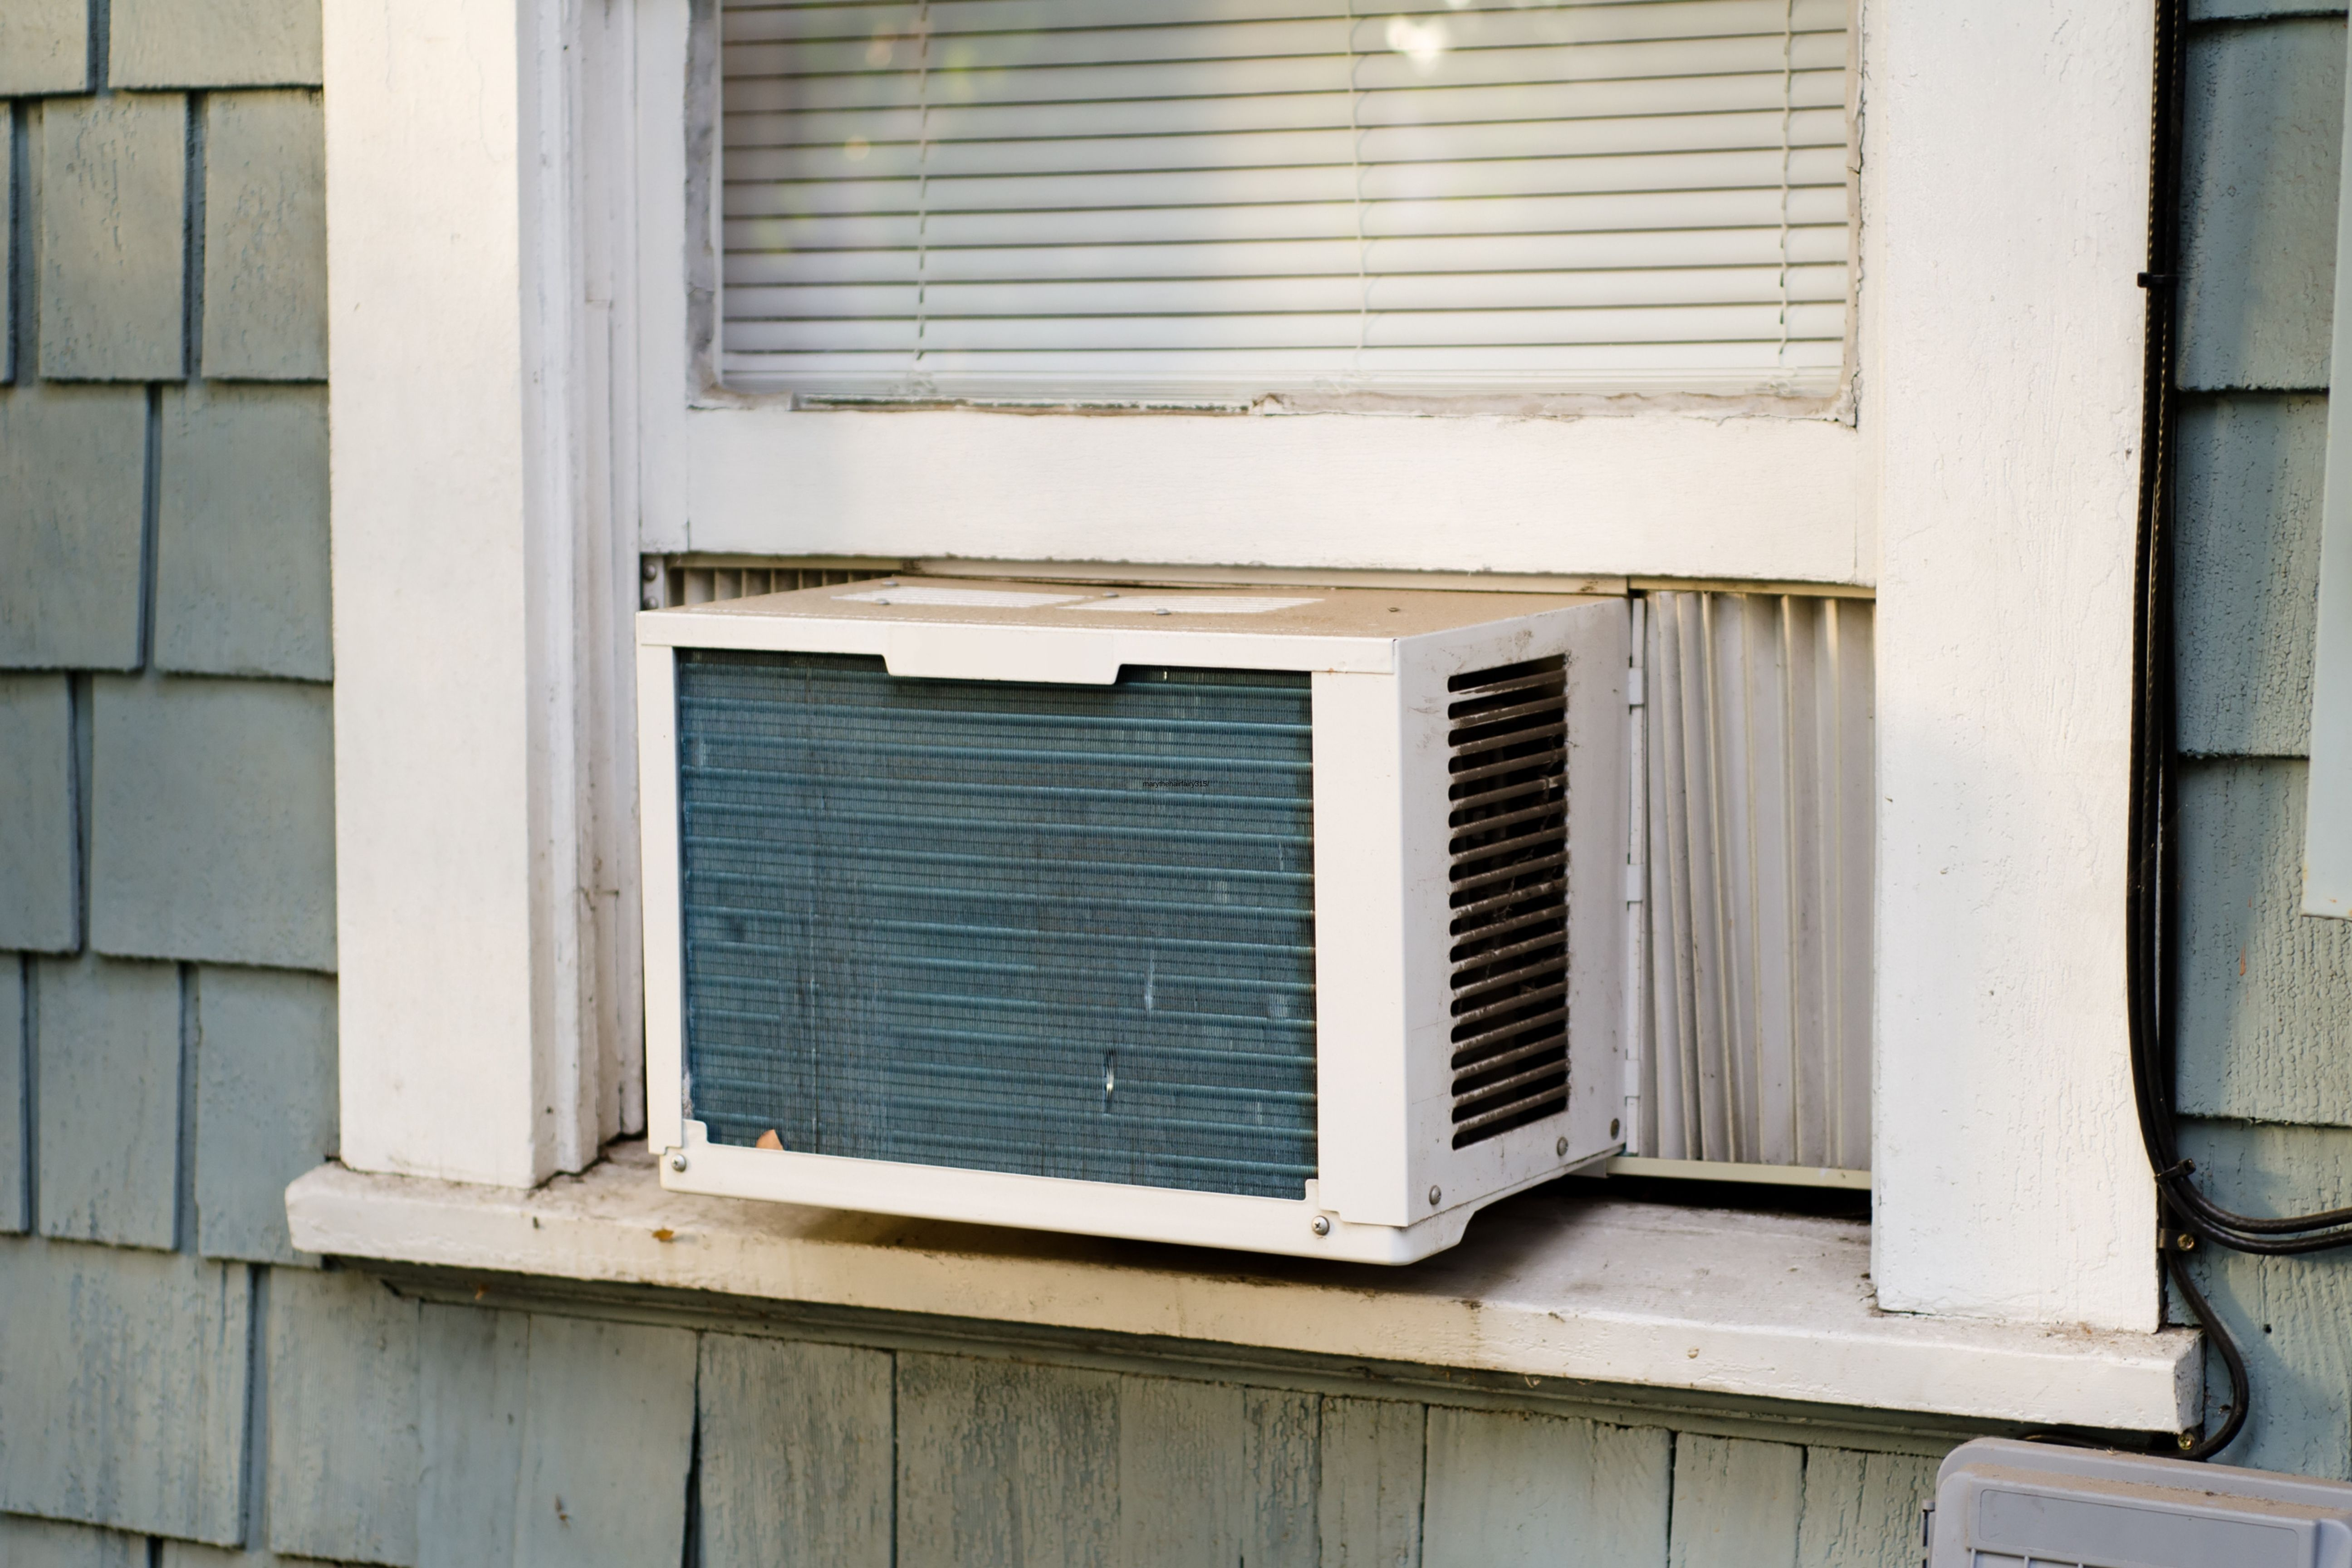 How to Clean Window AC Unit Brief Instruction